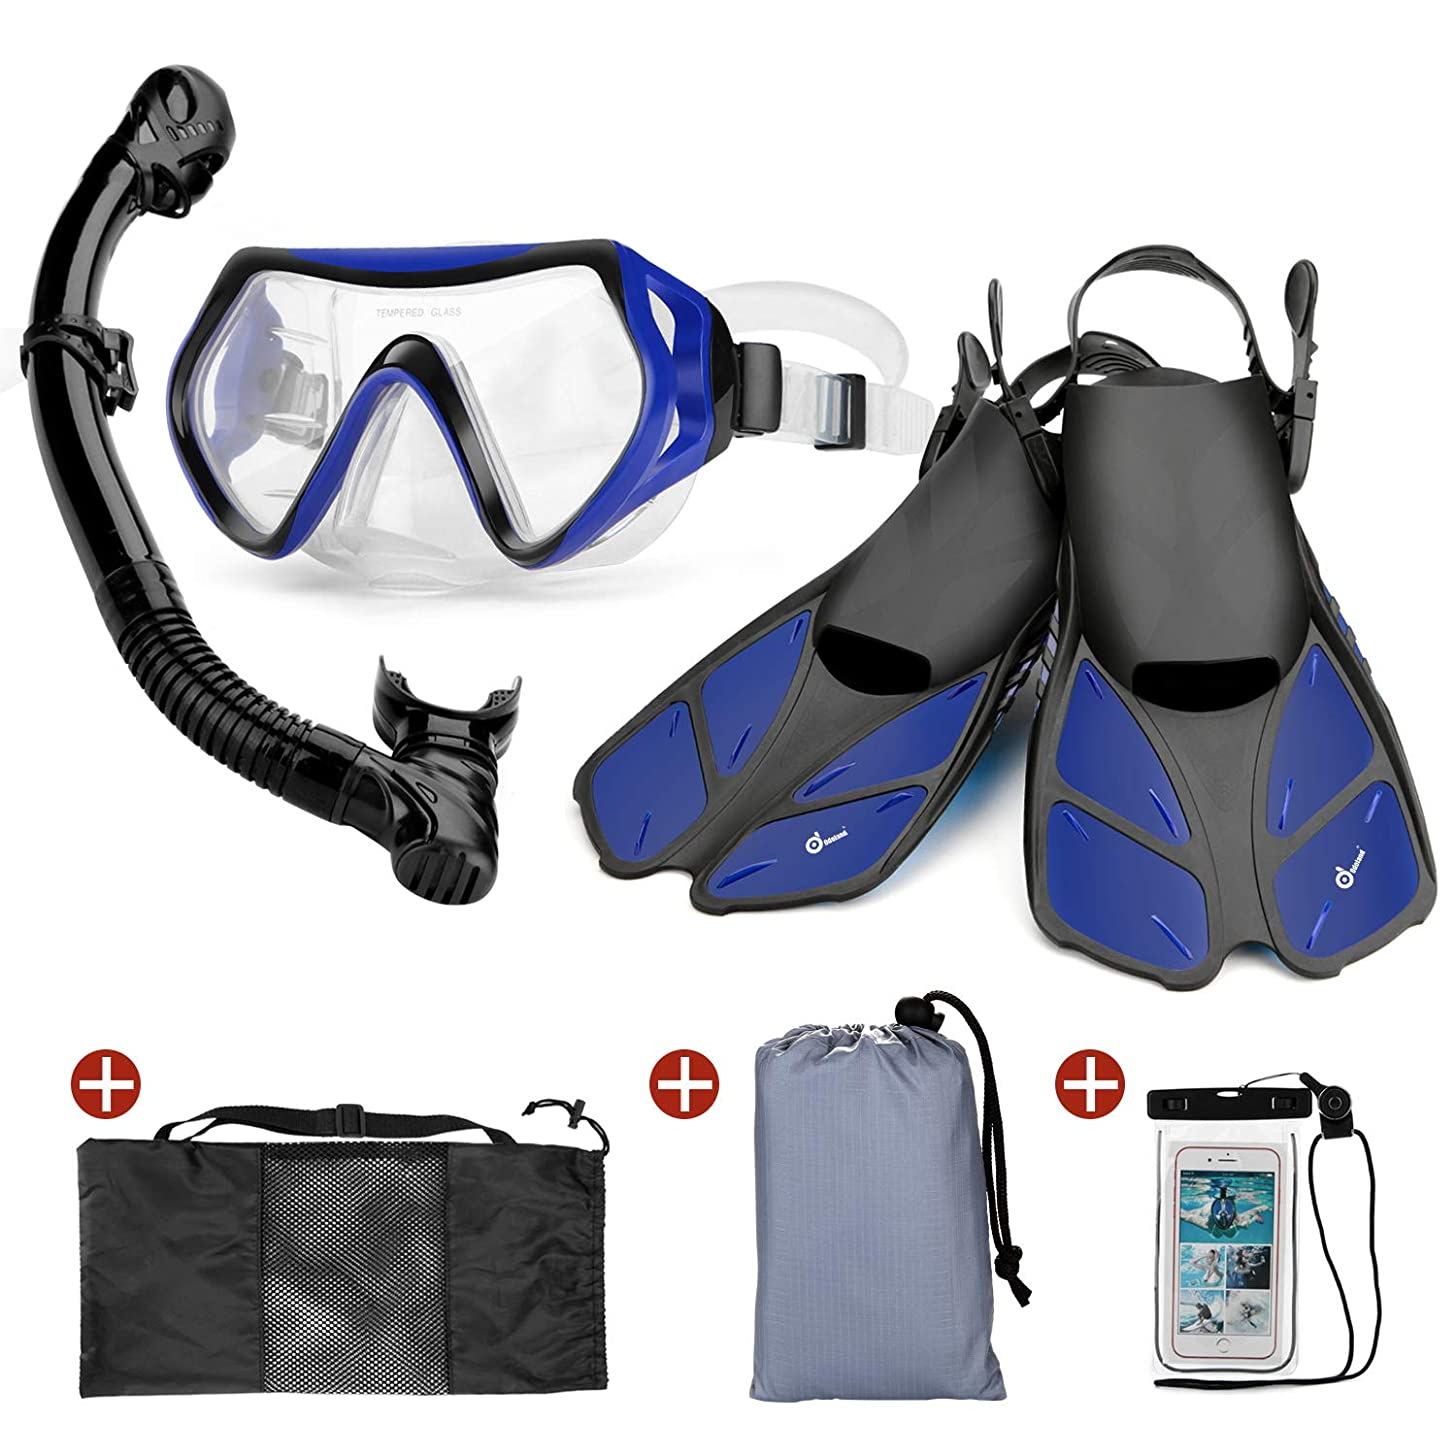 Odoland Snorkel Set 6-in-1 Snorkeling Packages, Diving Mask with Splash Guard Snorkel and Adjustable Swim Fins and Lightweight Mesh Bag and Waterproof Case and Beach Blanket